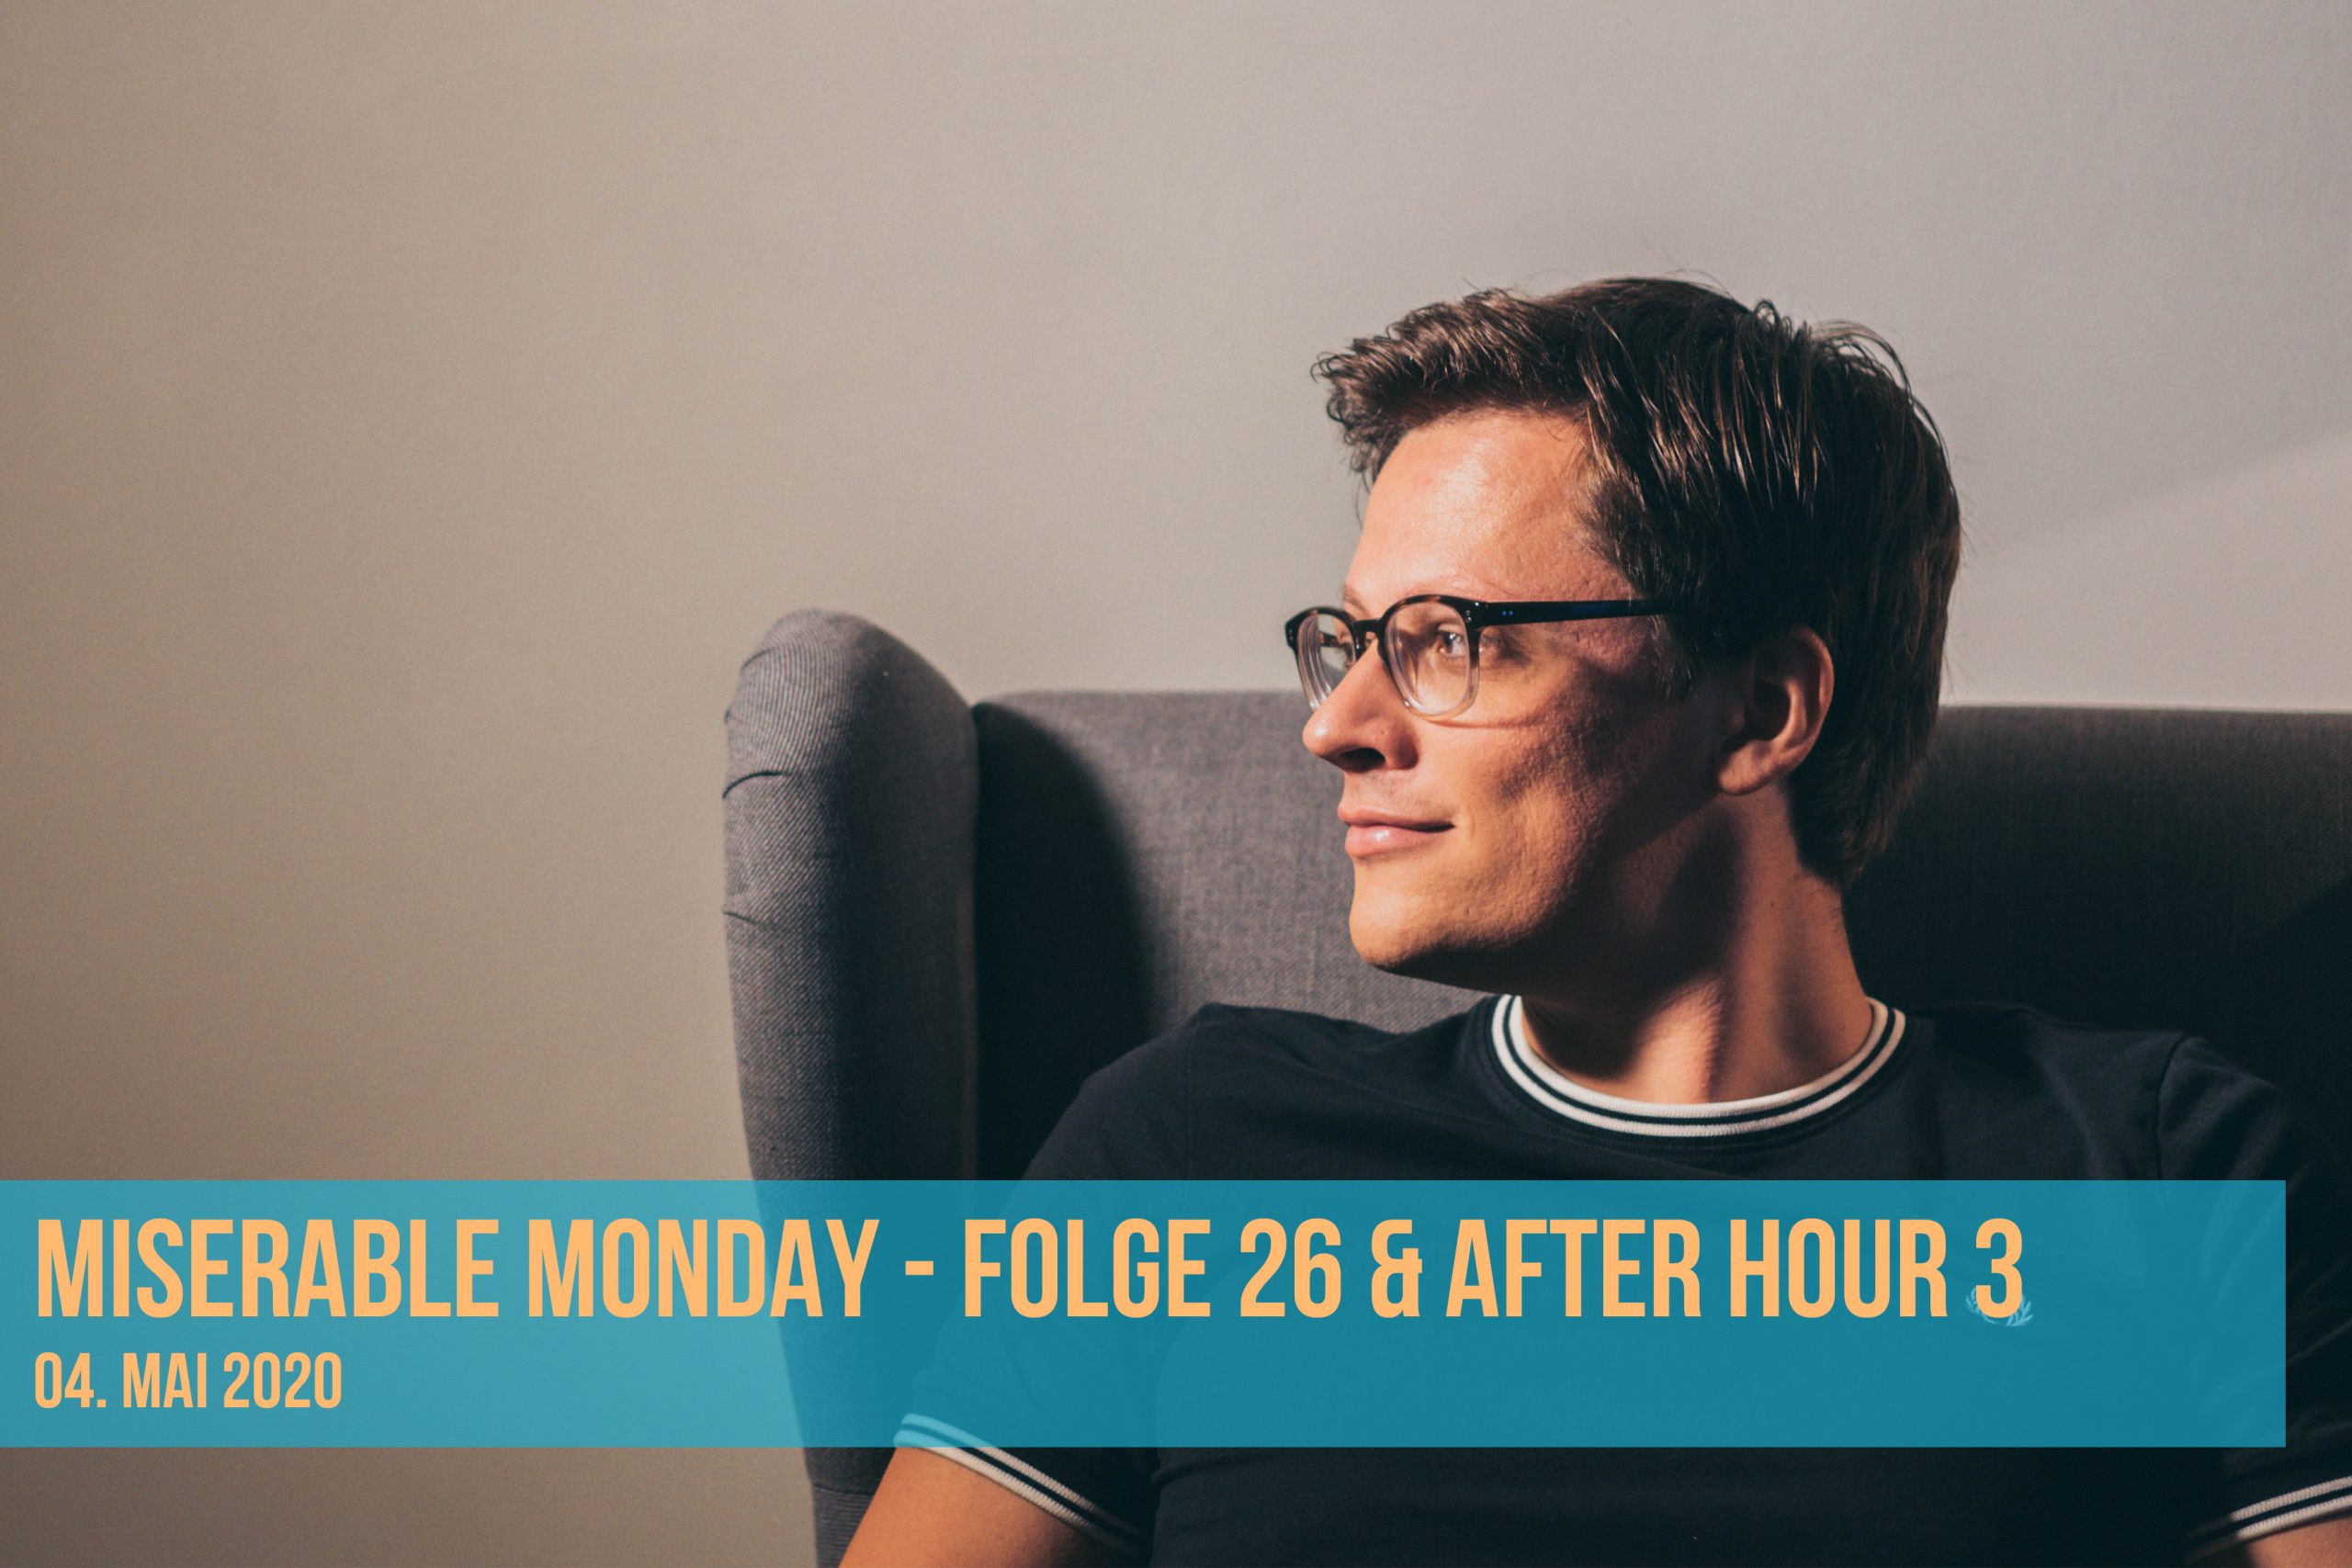 Miserable Monday - Folge 26 & After Hour 3 - 04/05/20